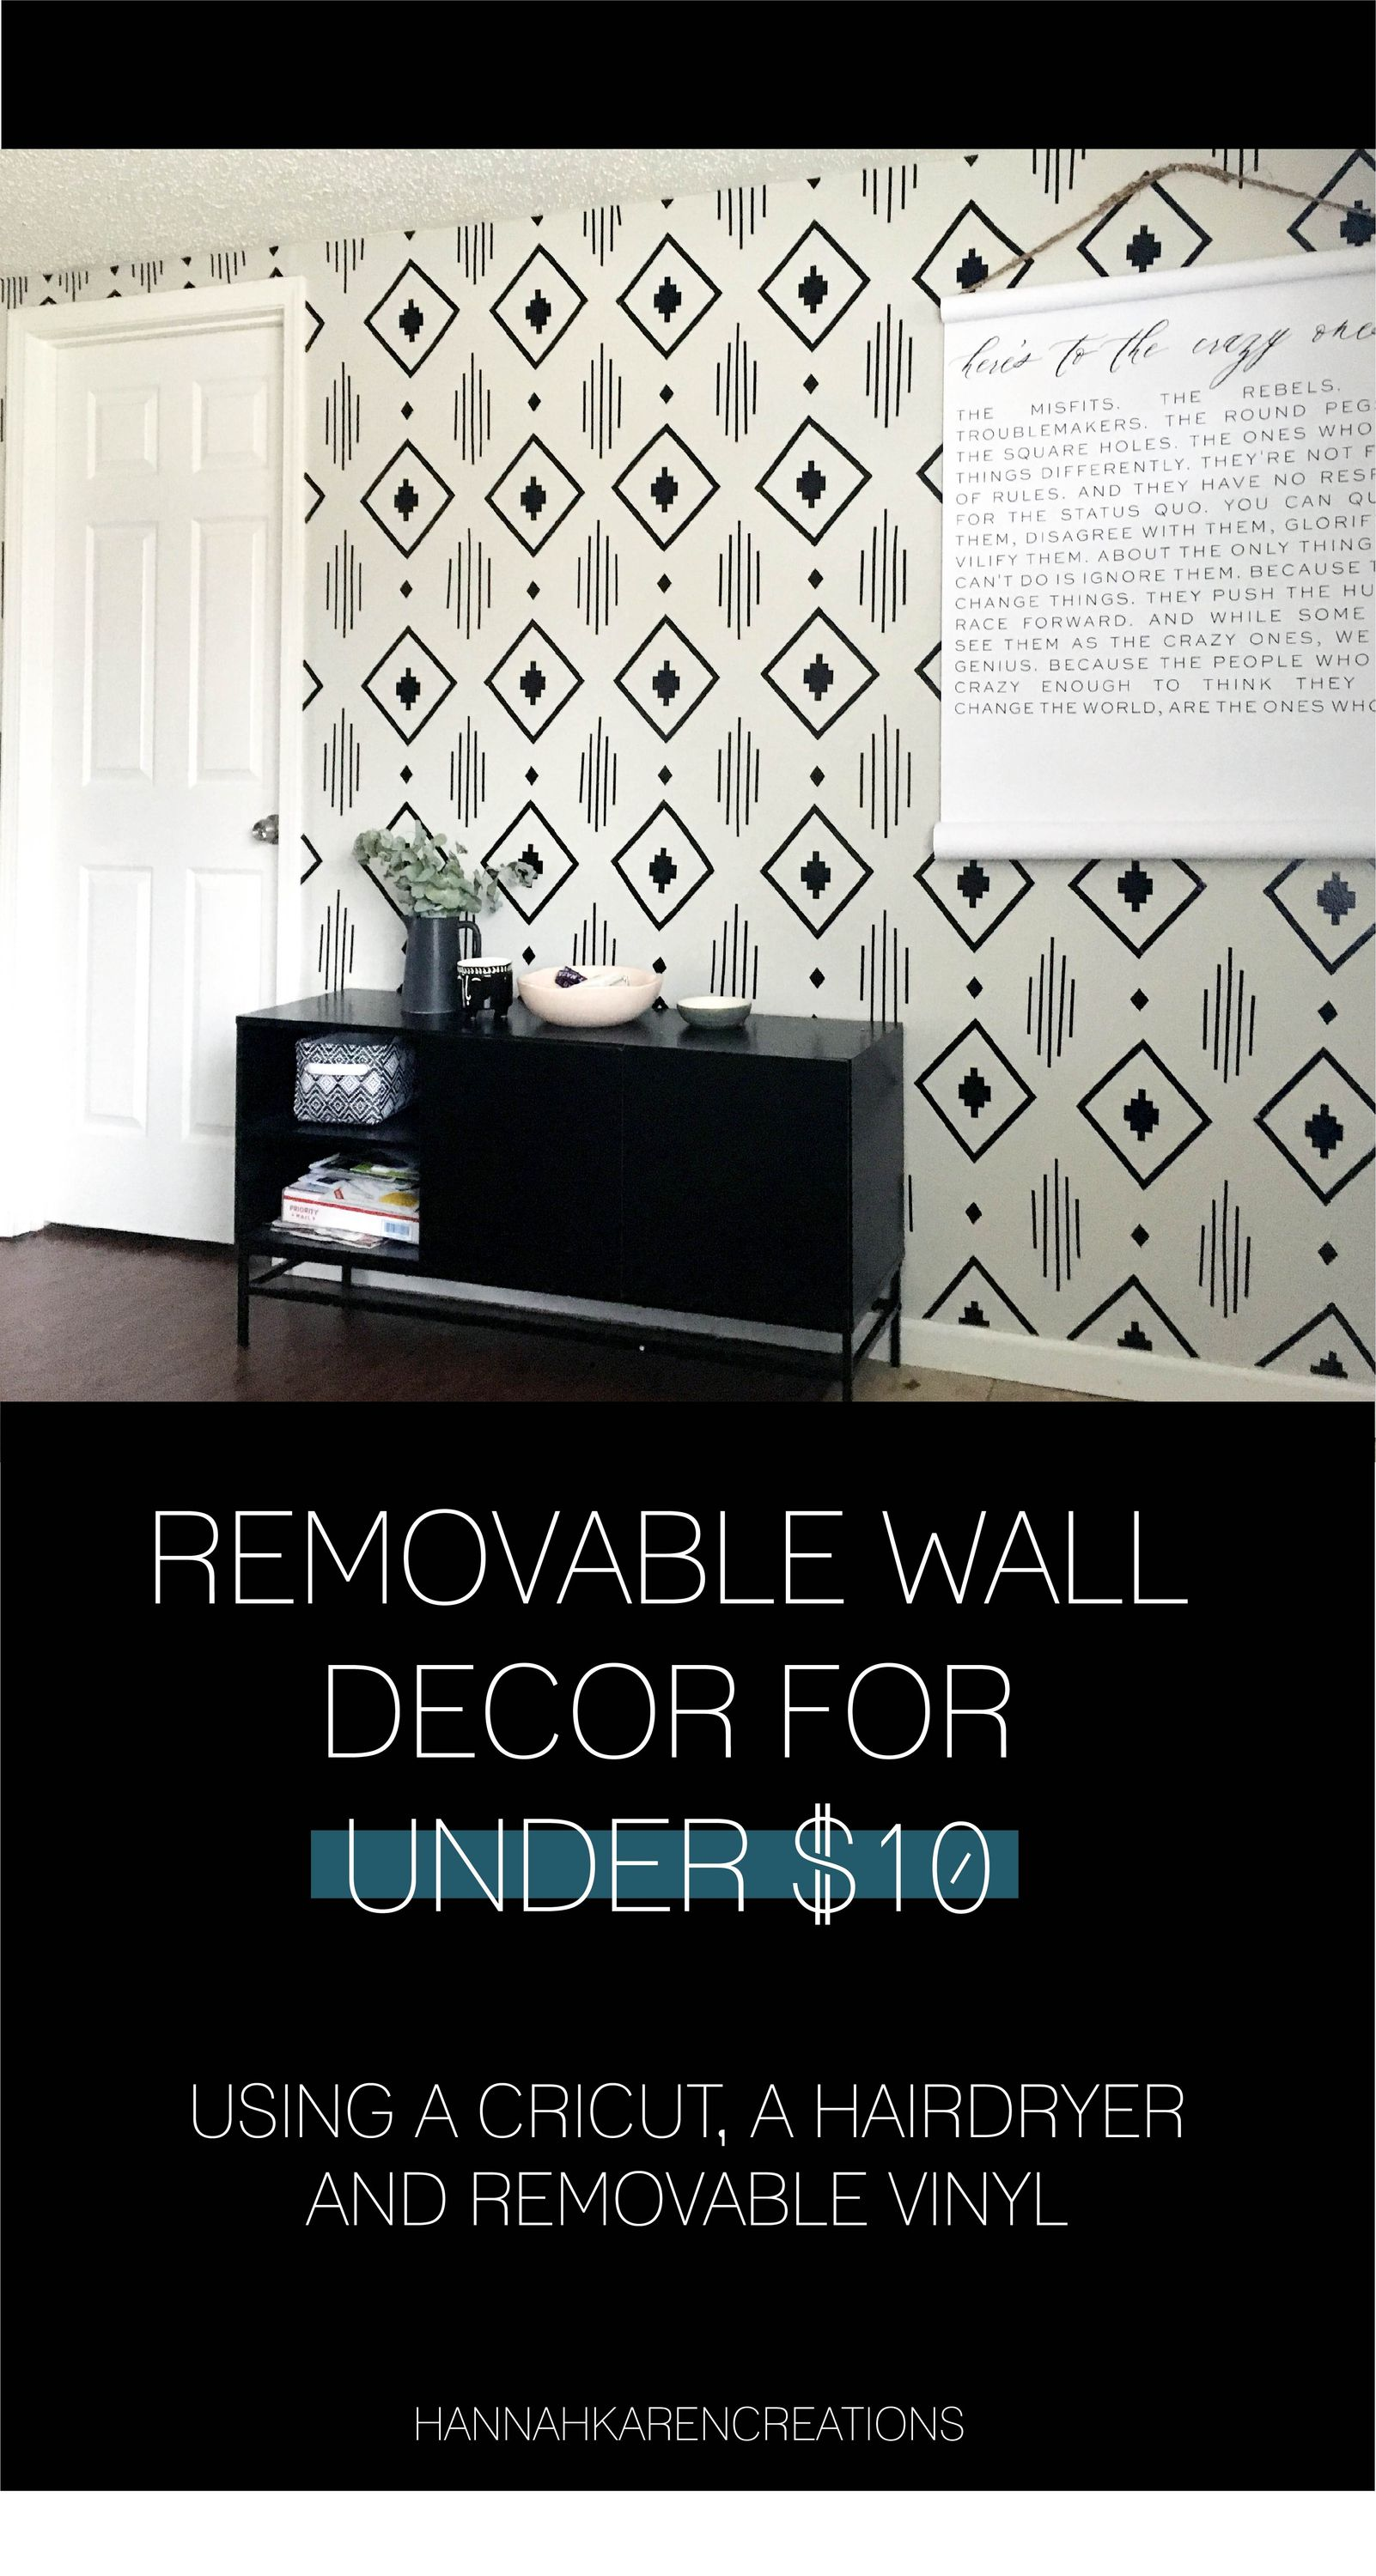 Removable Wall Decals For Under 10 Removable Wall Decals Removable Wall Wall Decals